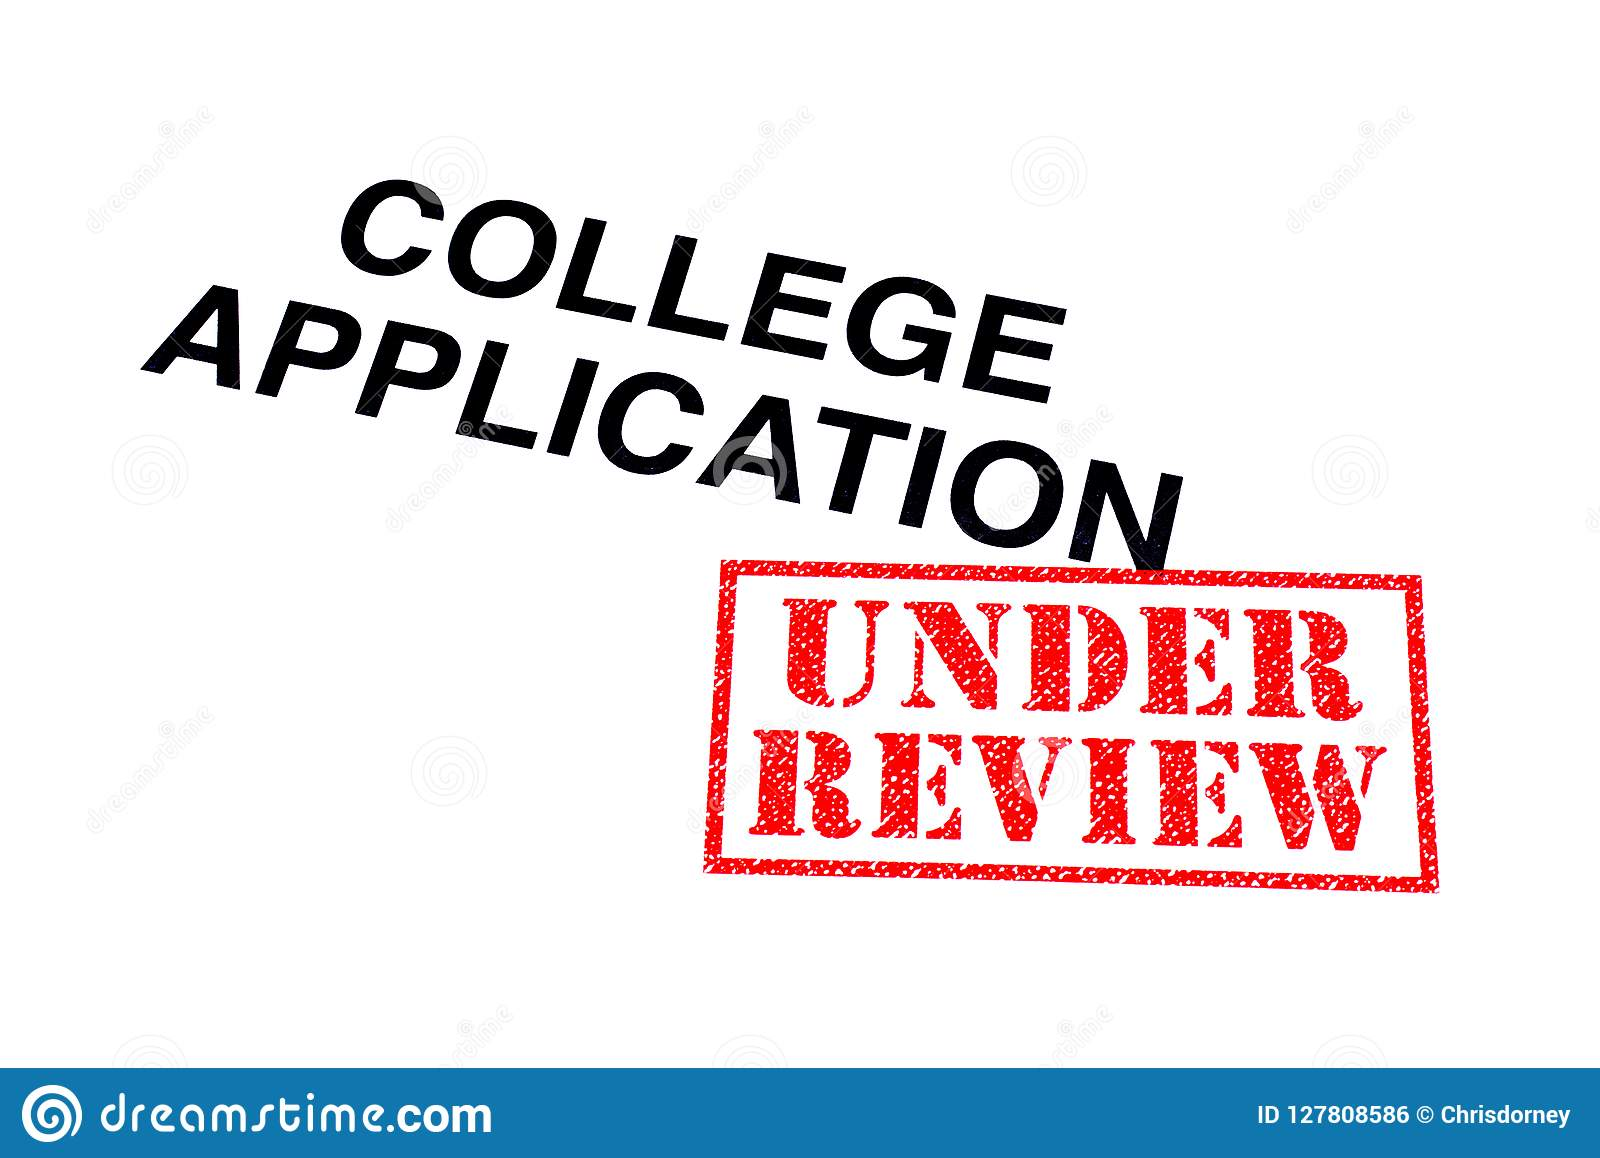 College Application Under Review Stock Photo - Image of